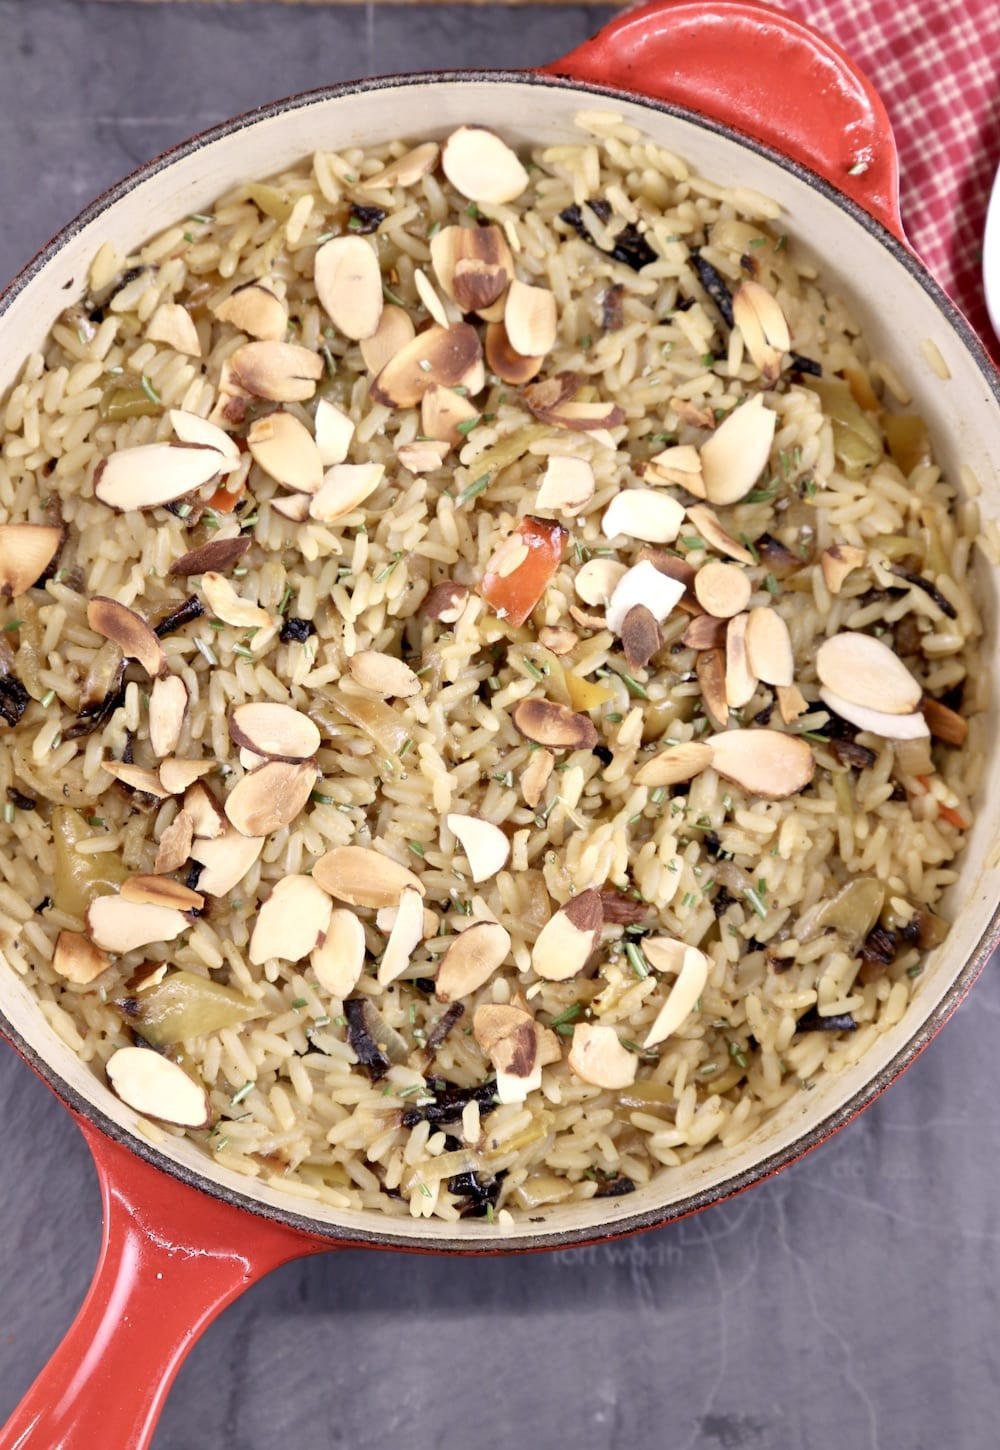 Toasted almonds over rice pilaf in red pan